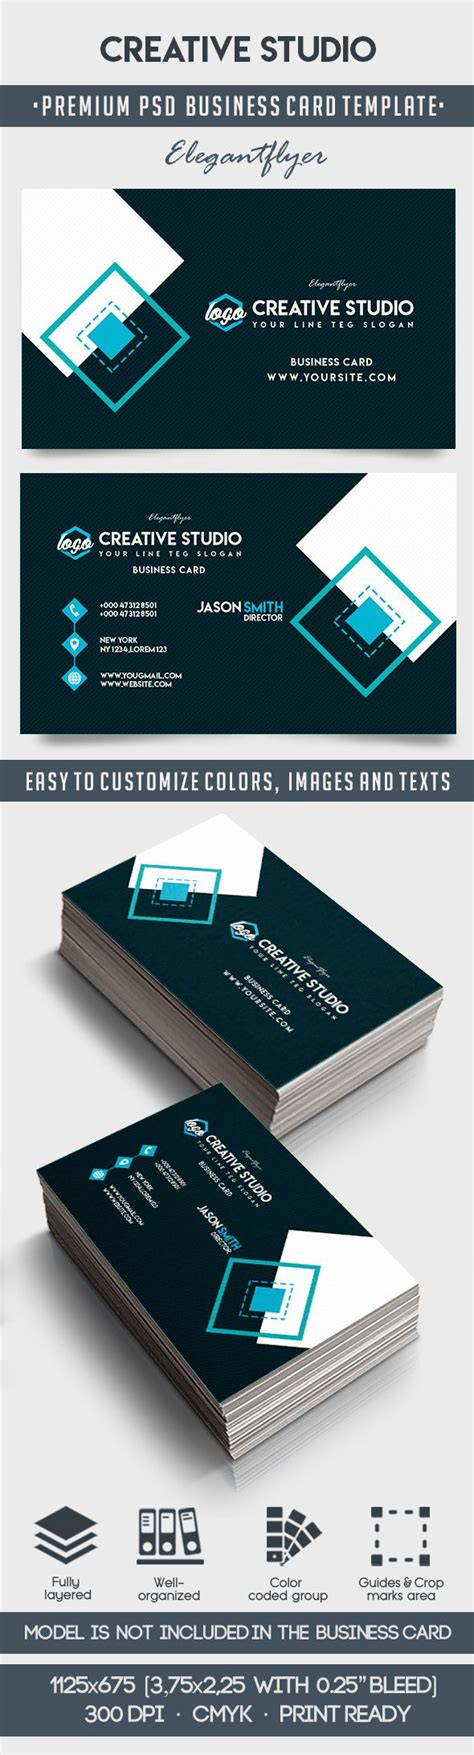 https psdfreebies psd creative studio business card psd template creative studio business card templates psd by